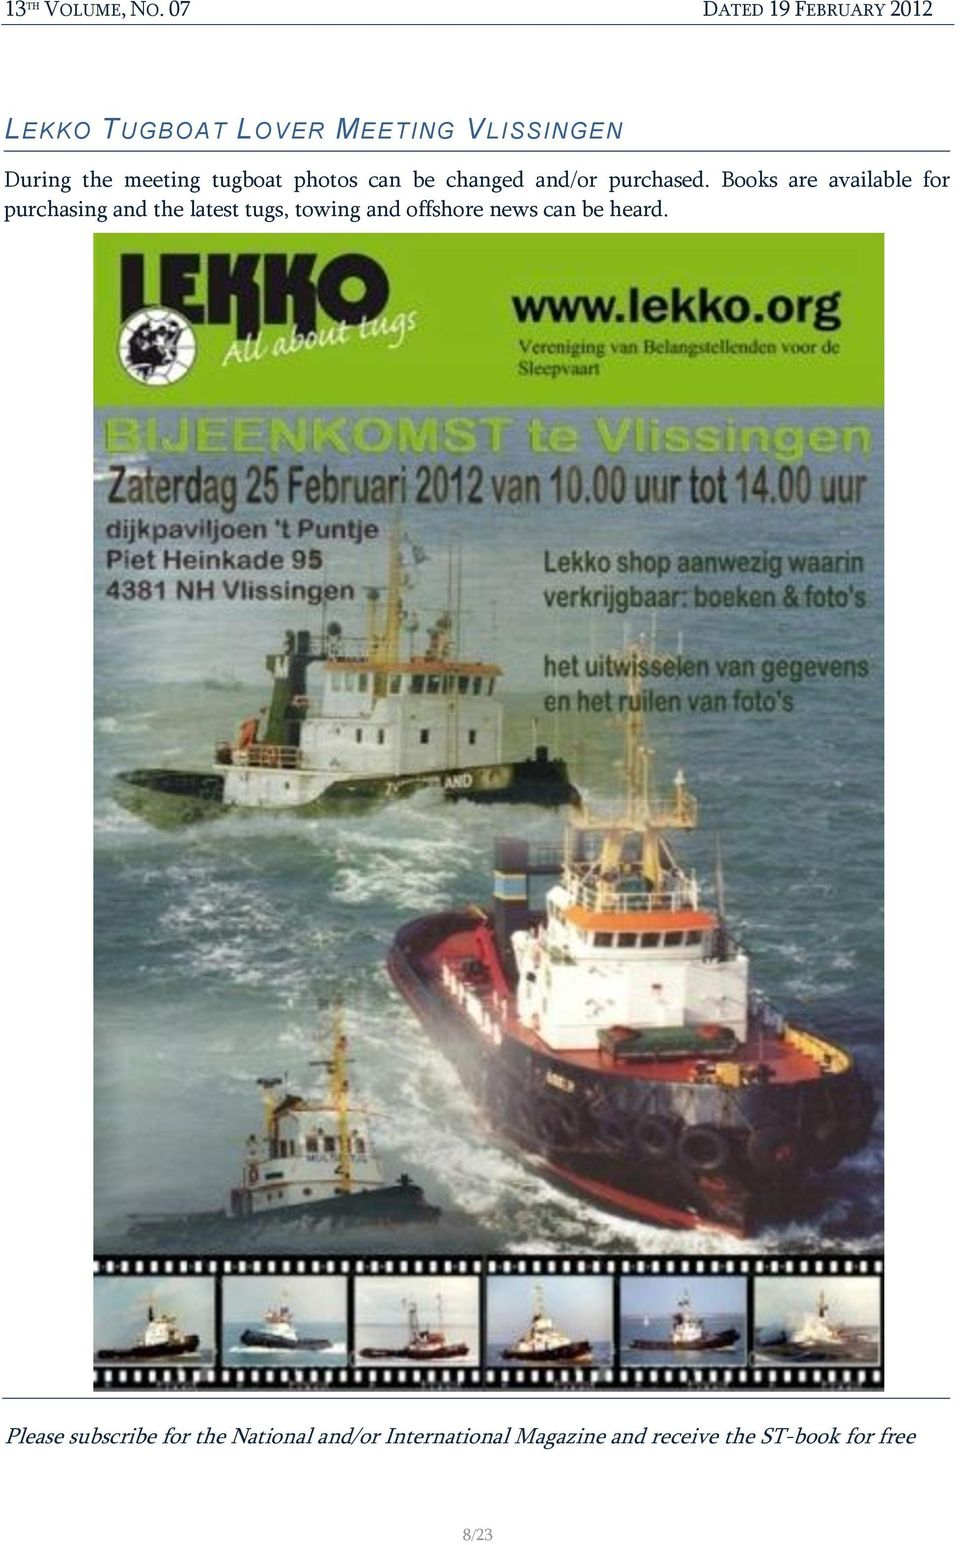 Books are available for purchasing and the latest tugs, towing and offshore